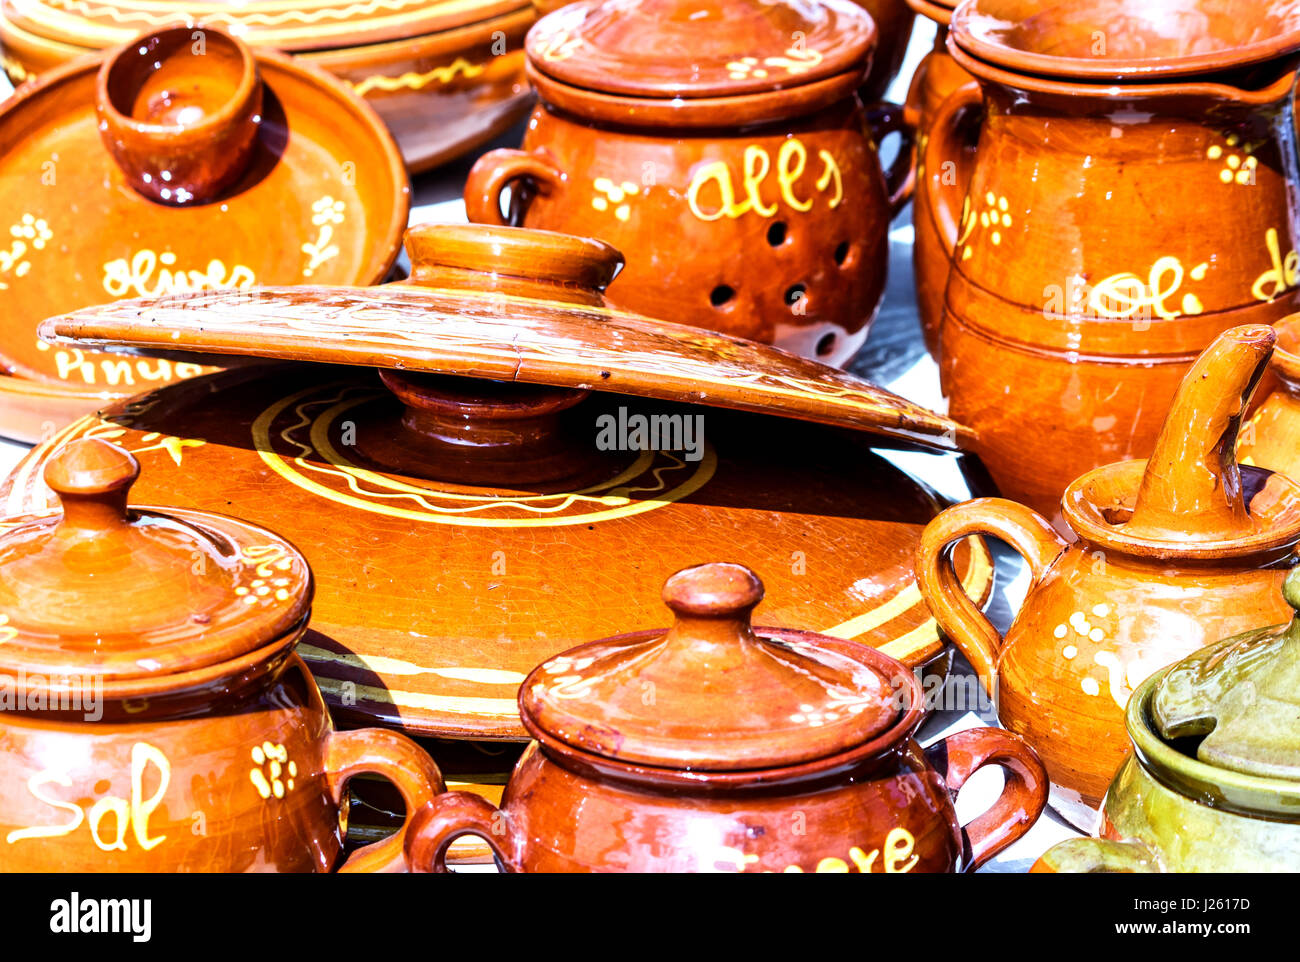 Armenische Küche Gata Spanish Souvenir Pottery Spain Stockfotos And Spanish